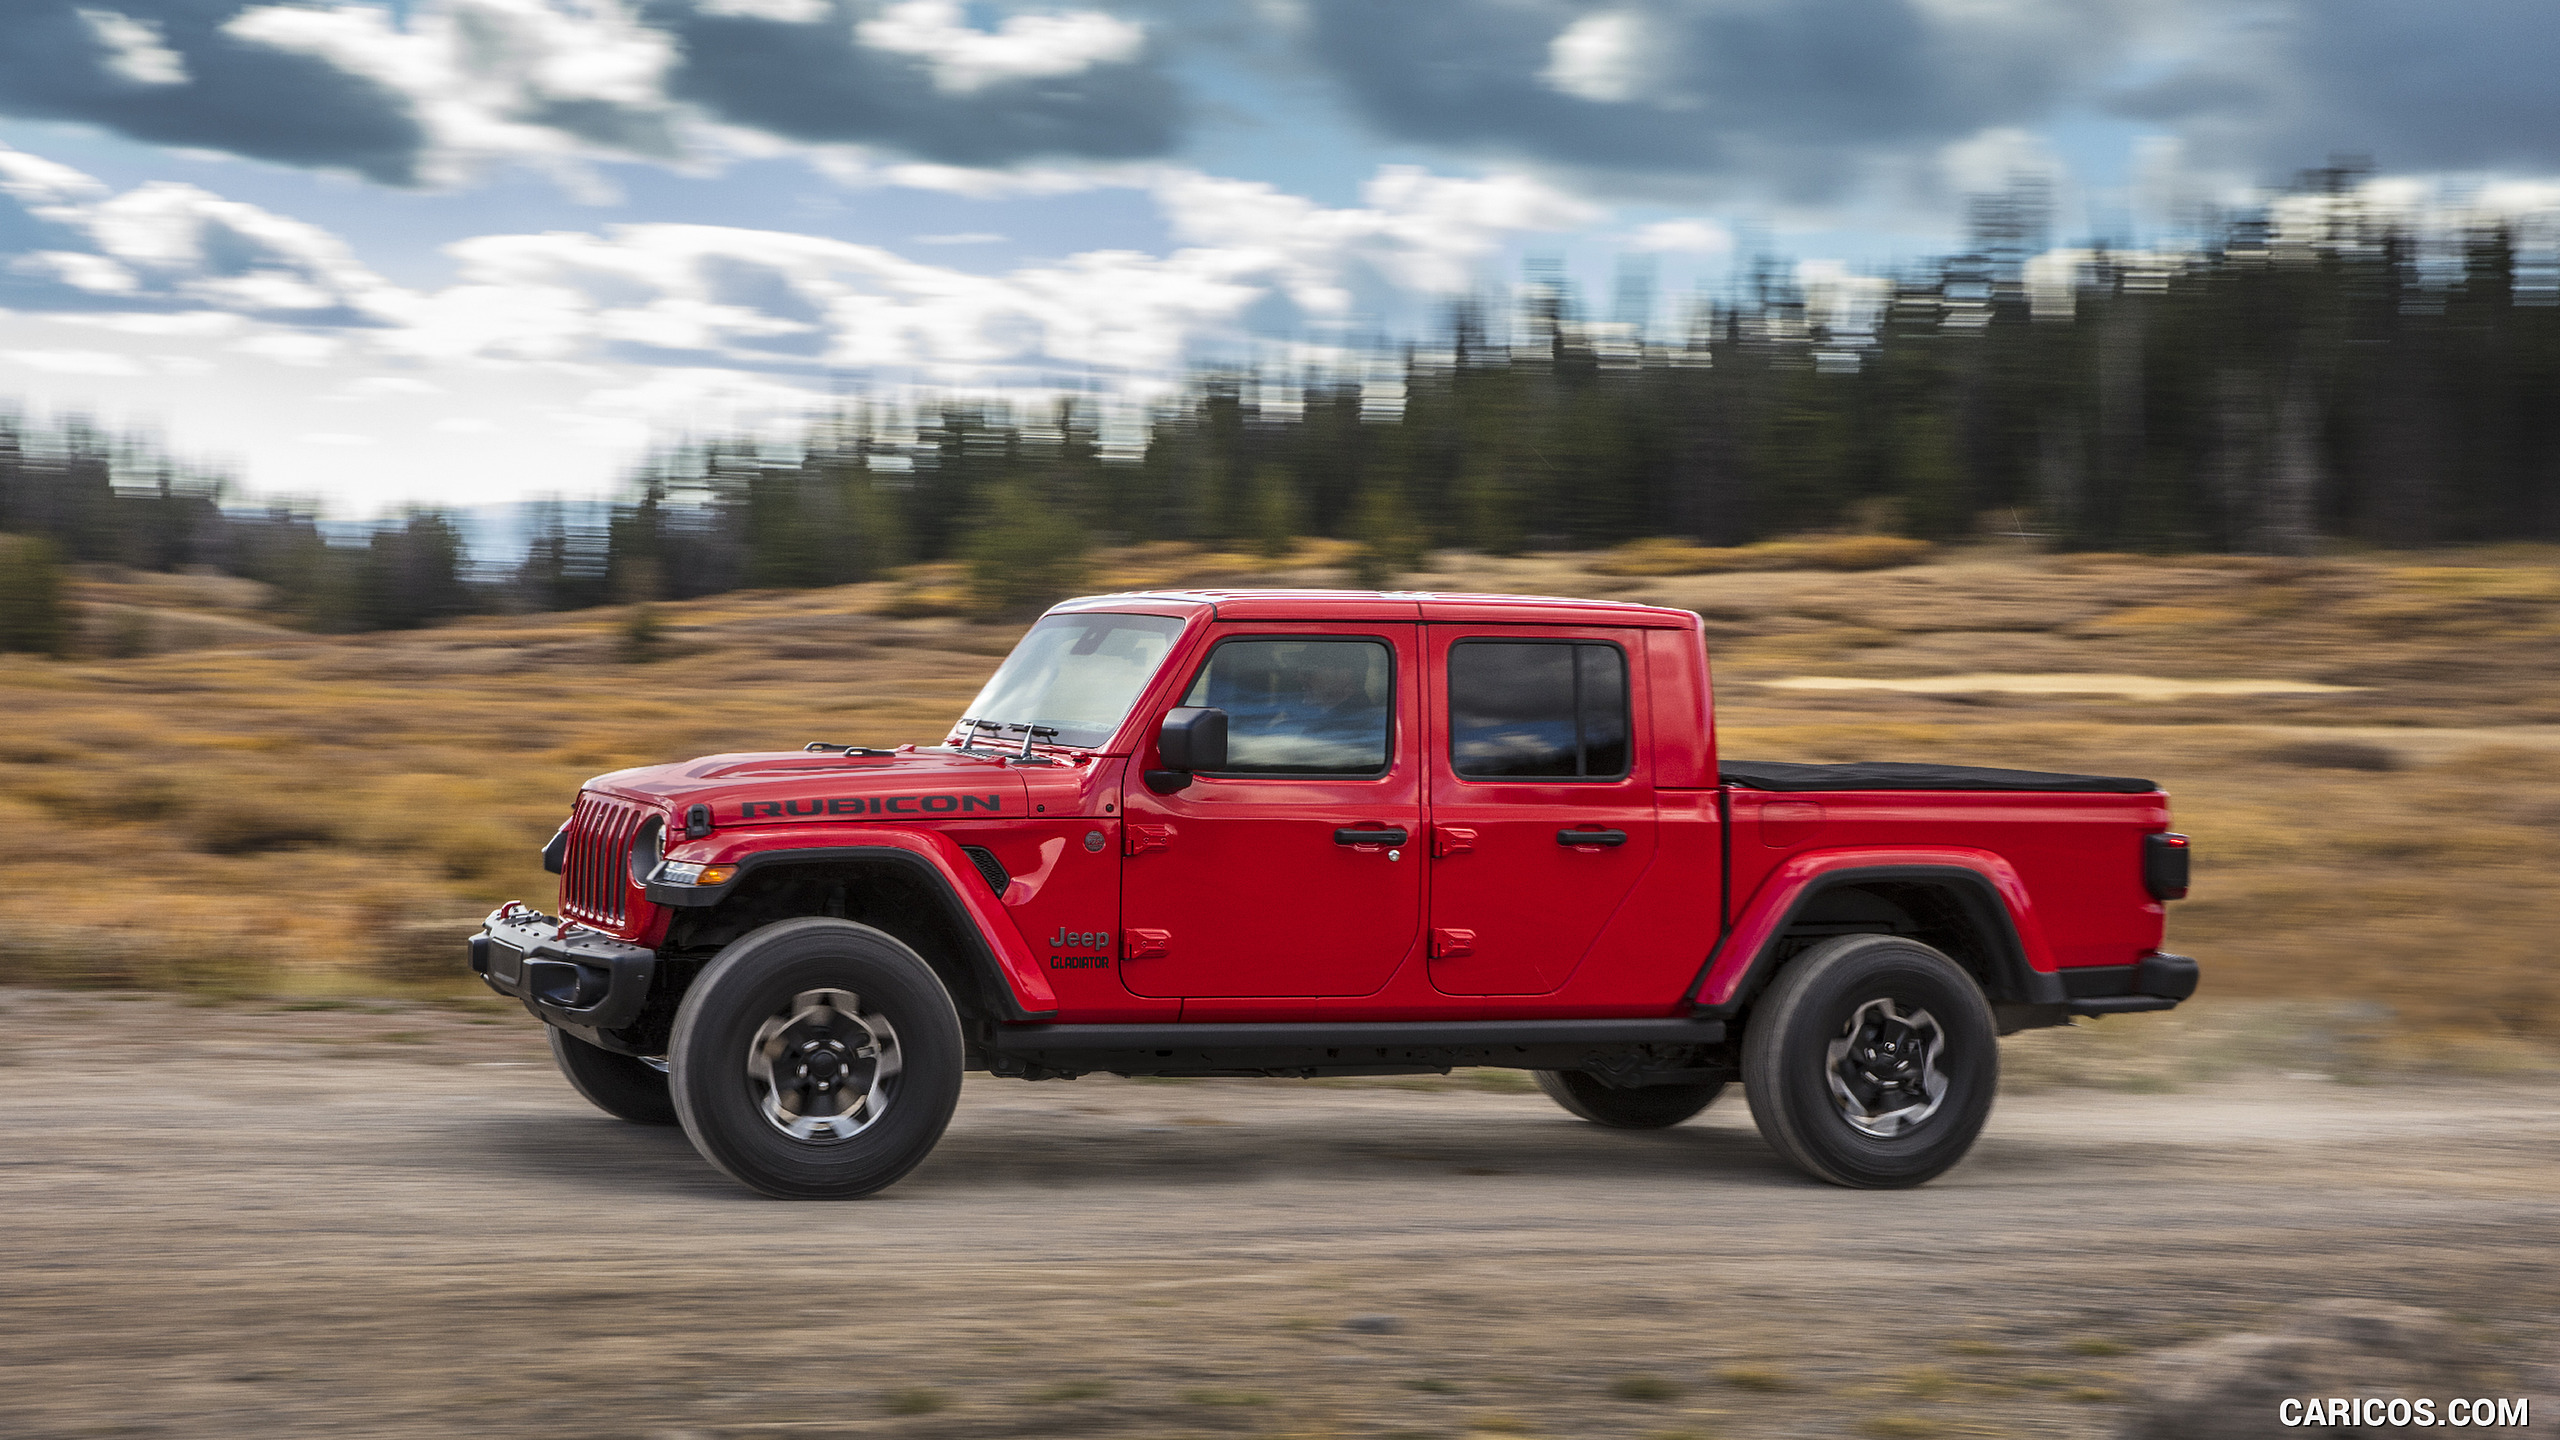 2020 Jeep Gladiator Rubicon   Side HD Wallpaper 115 2560x1440